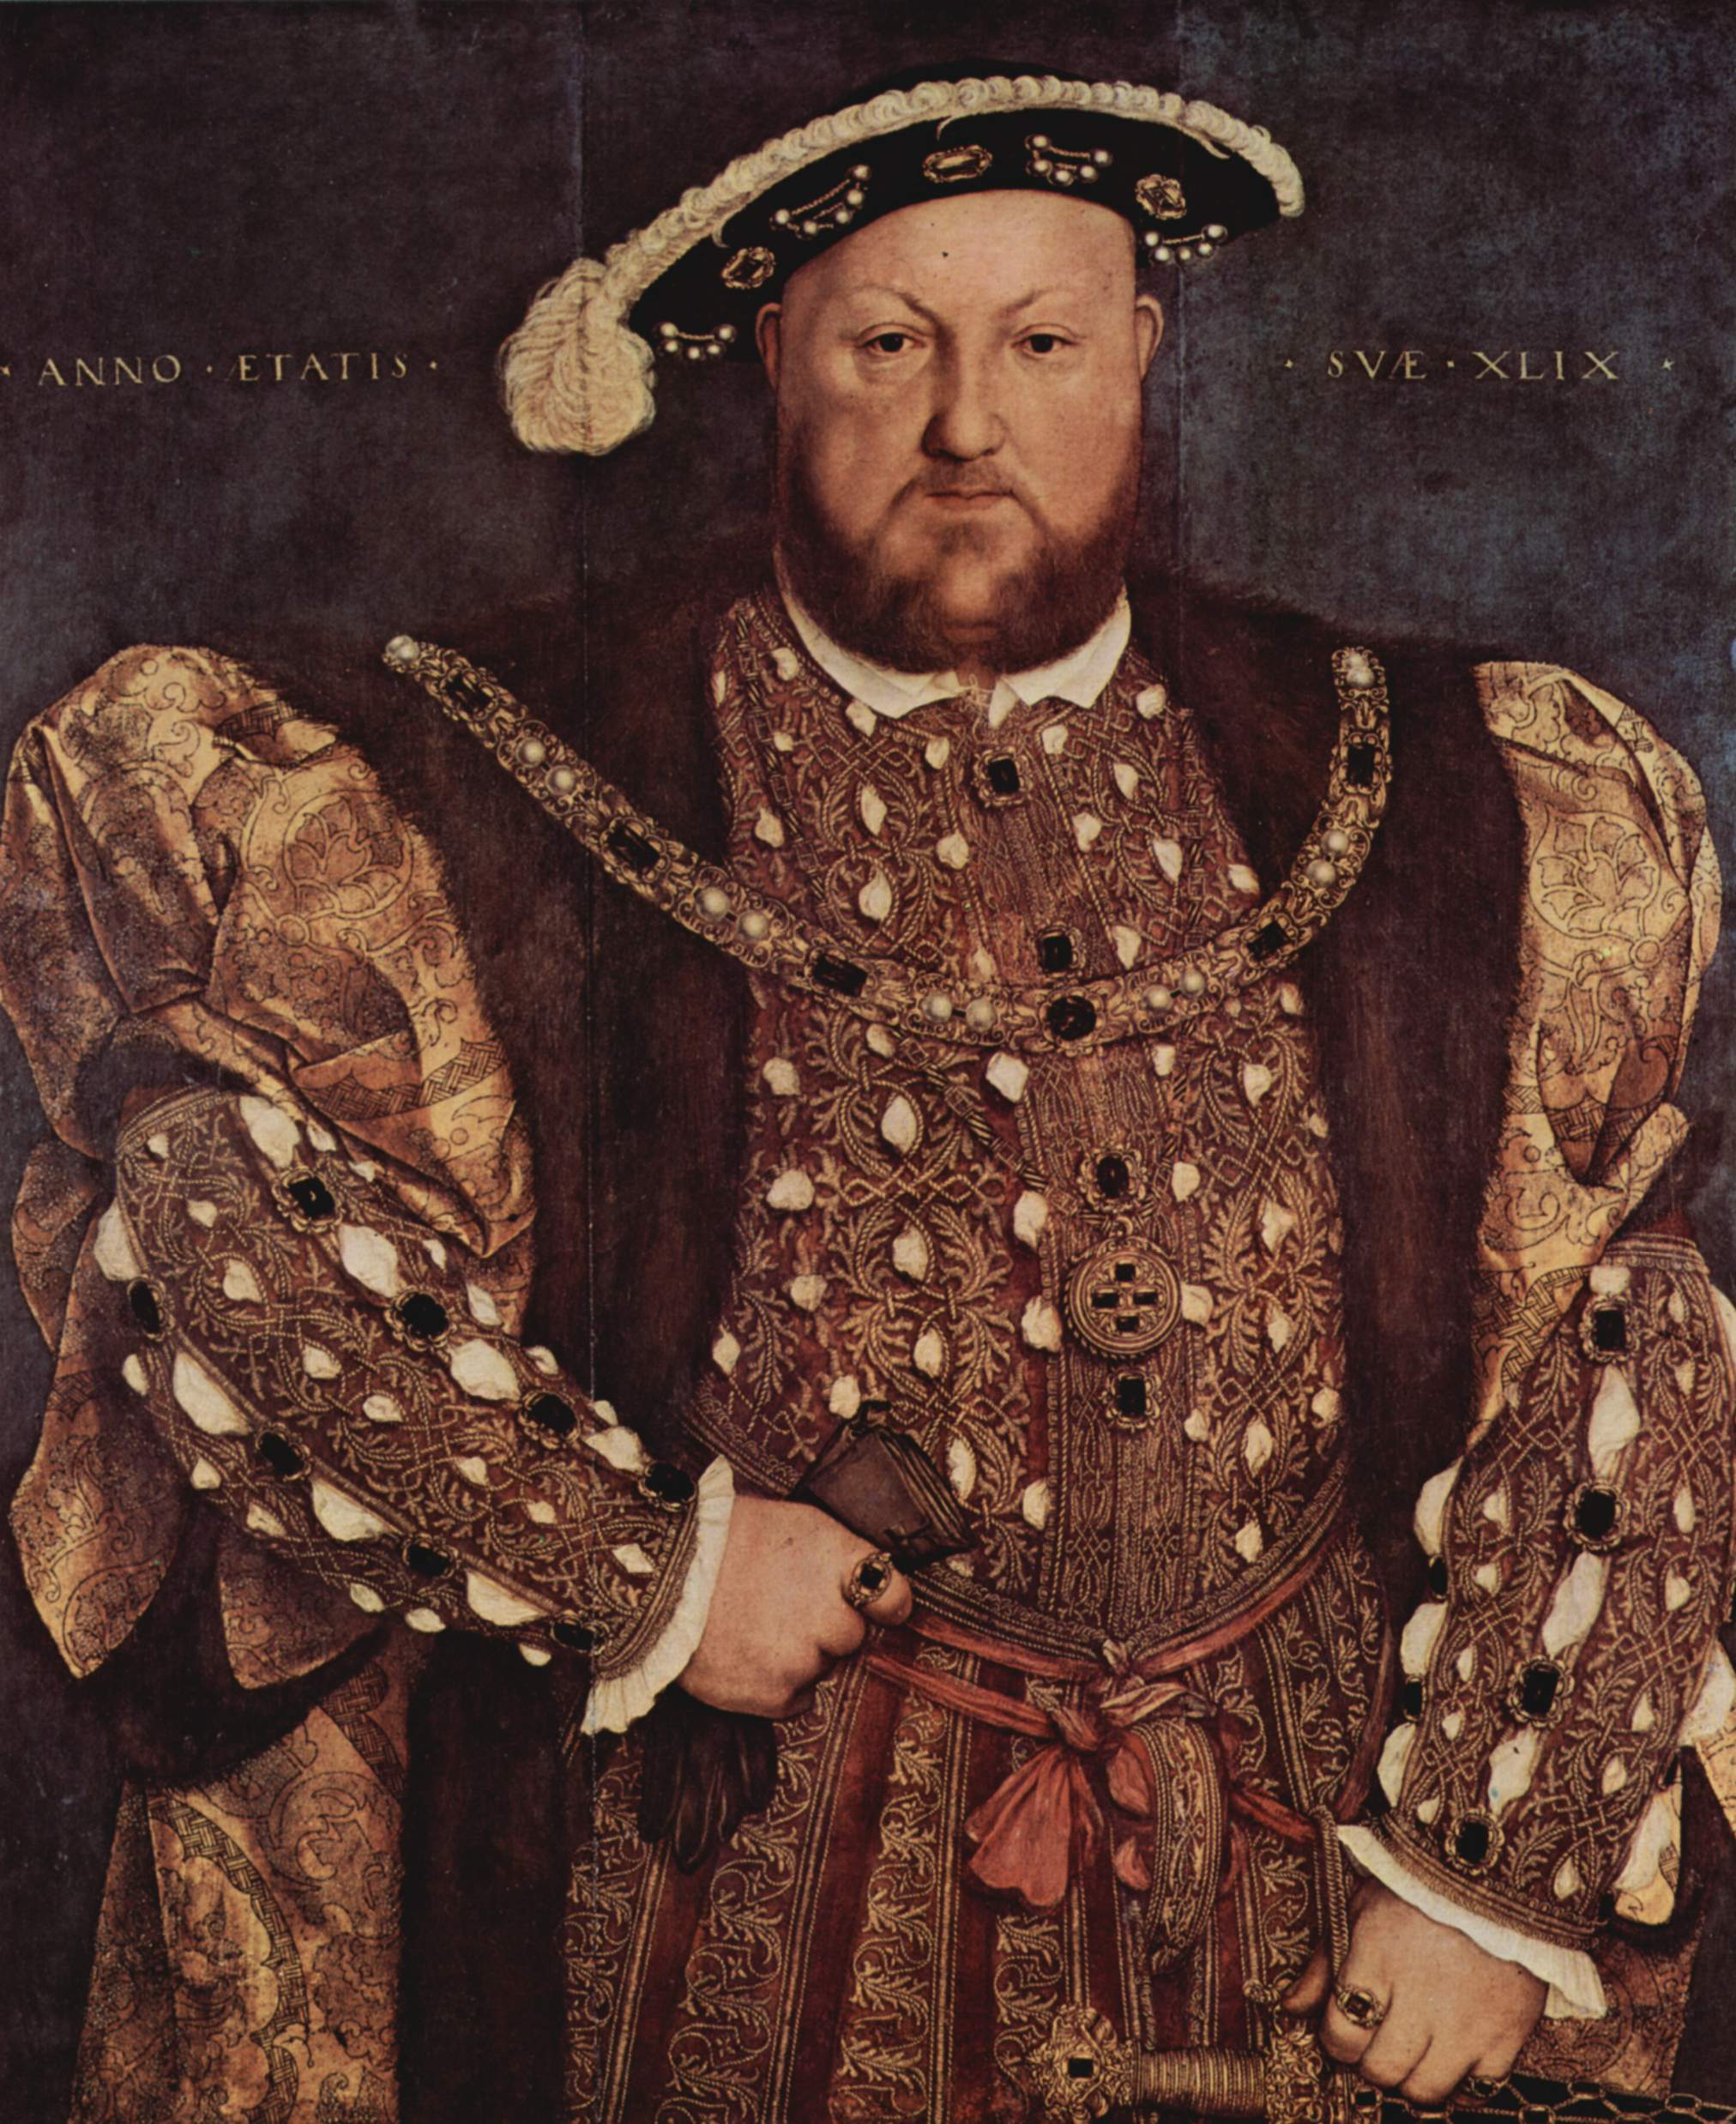 Portrait of Henry VIII. c.1570-99. After Hans Holbein the Younger